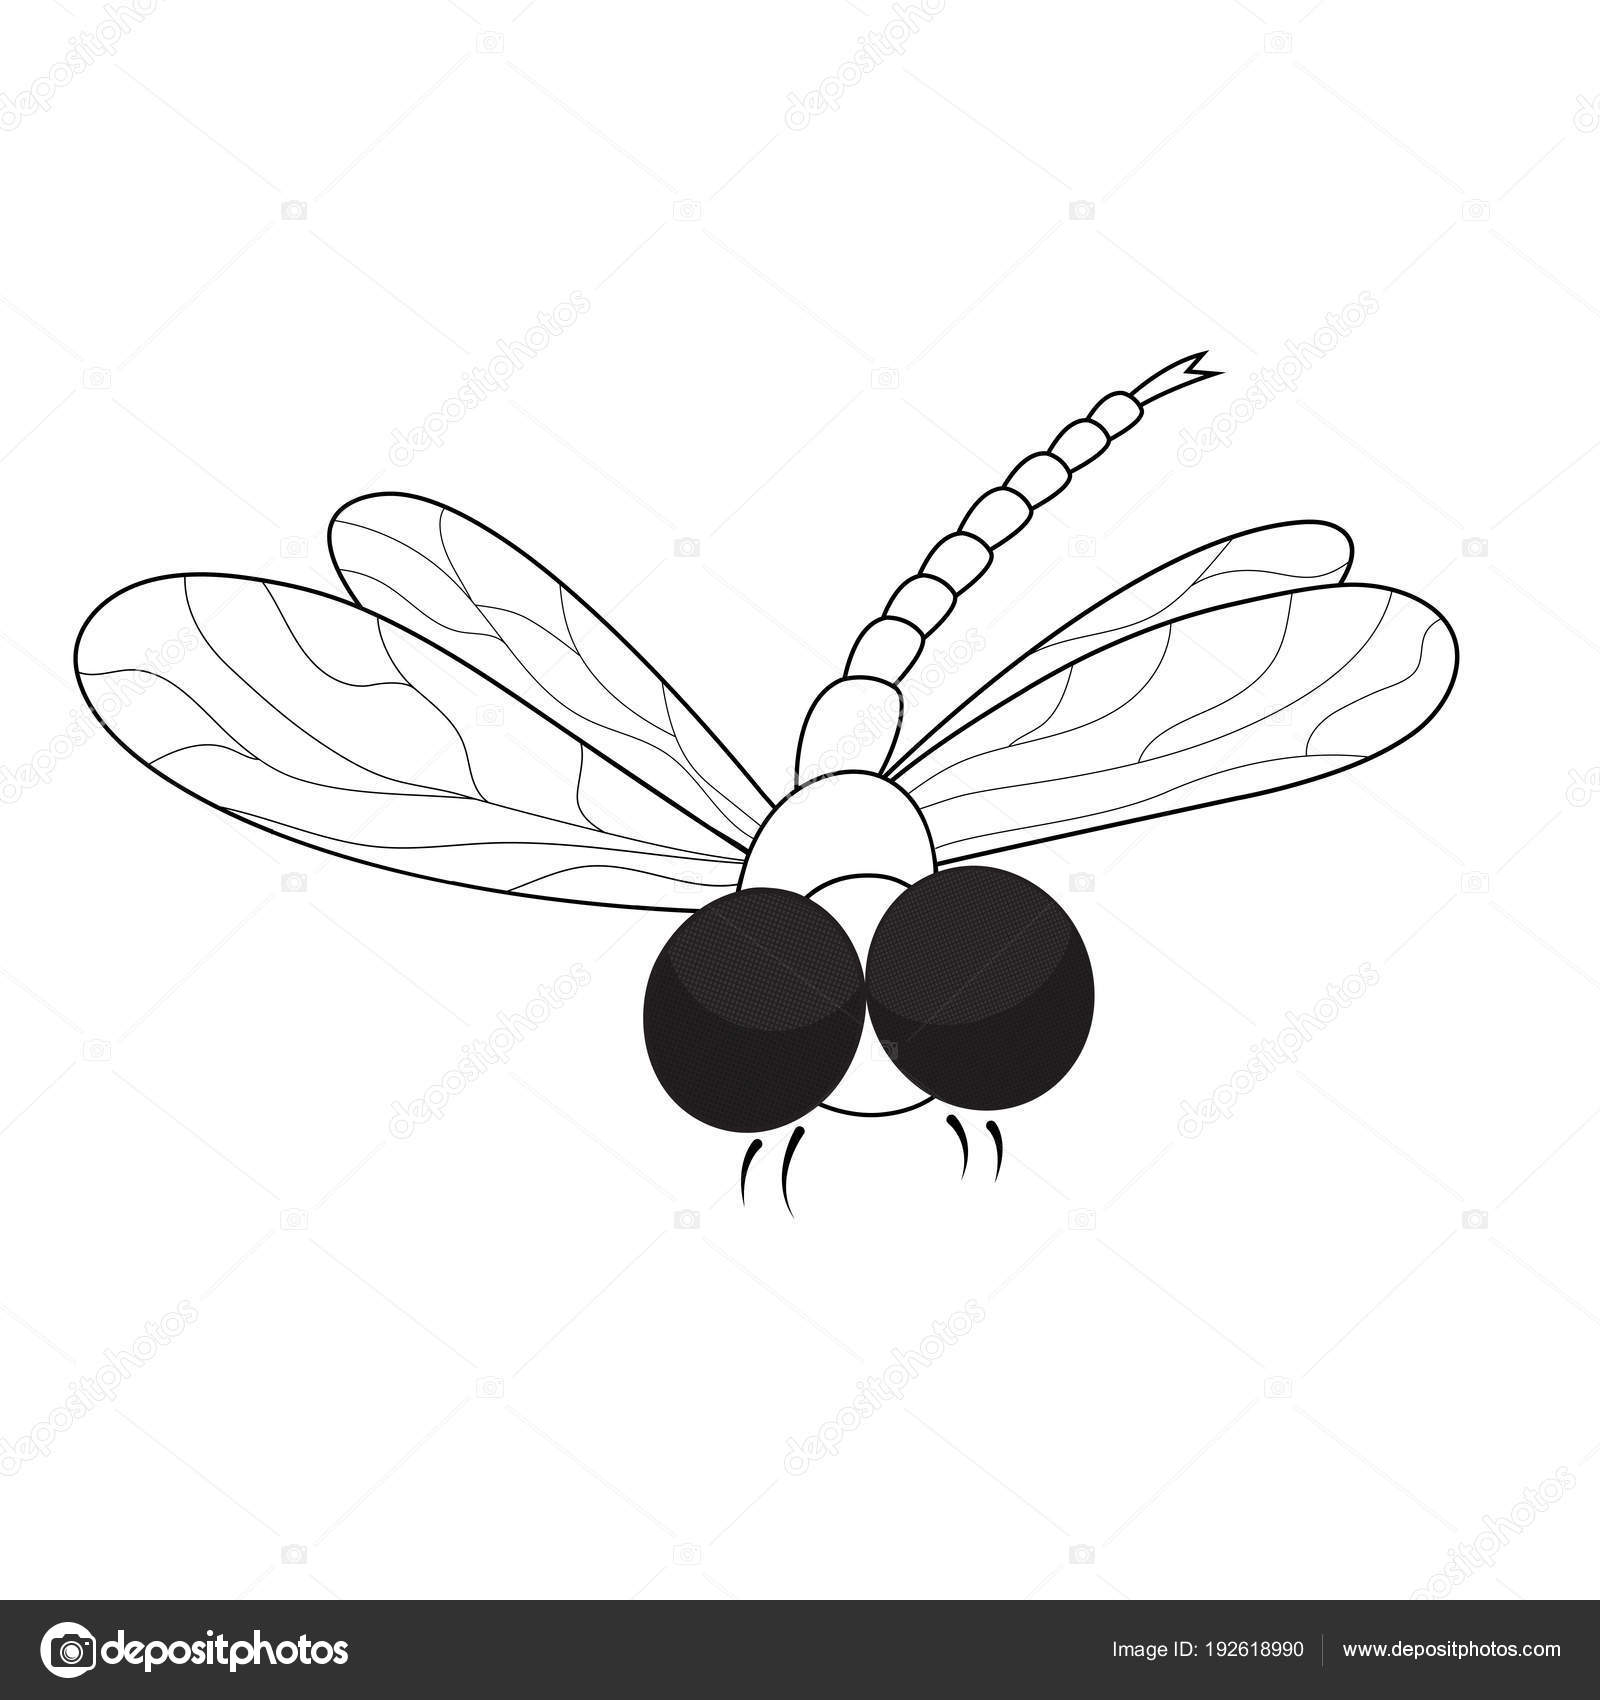 Dragonfly Coloring Page Black White Illustration — Stock Vector ...